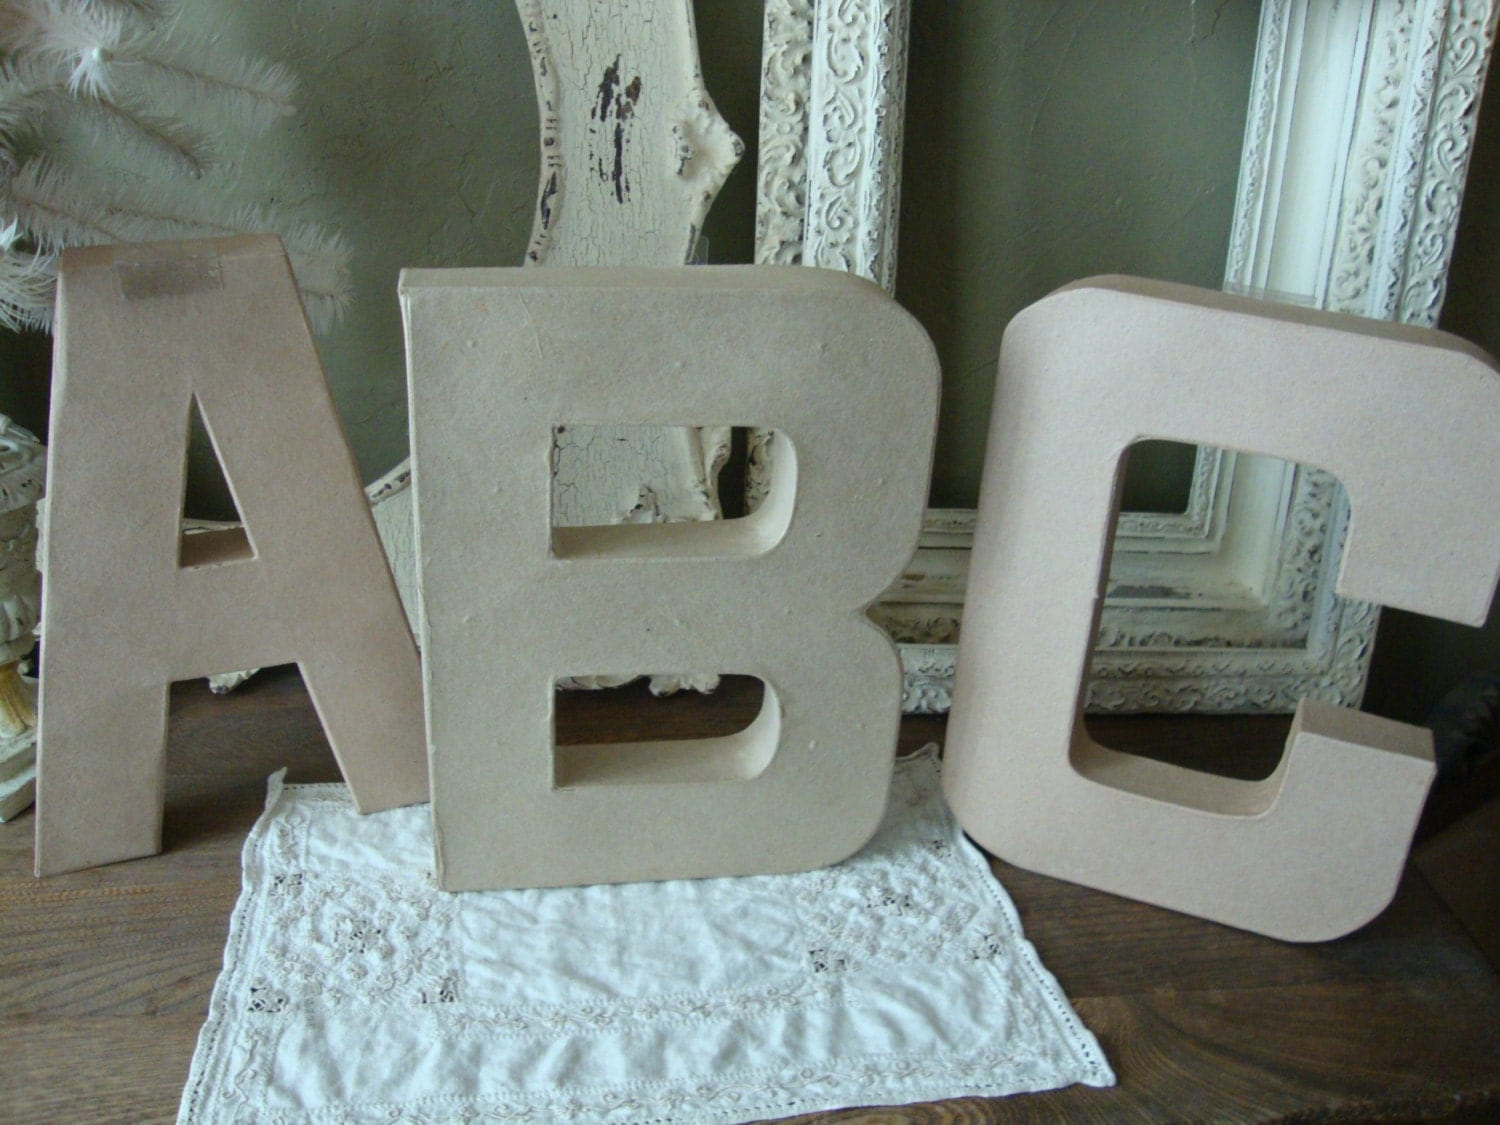 Large Paper mache letters ABC wall decor DIY crafts supplies